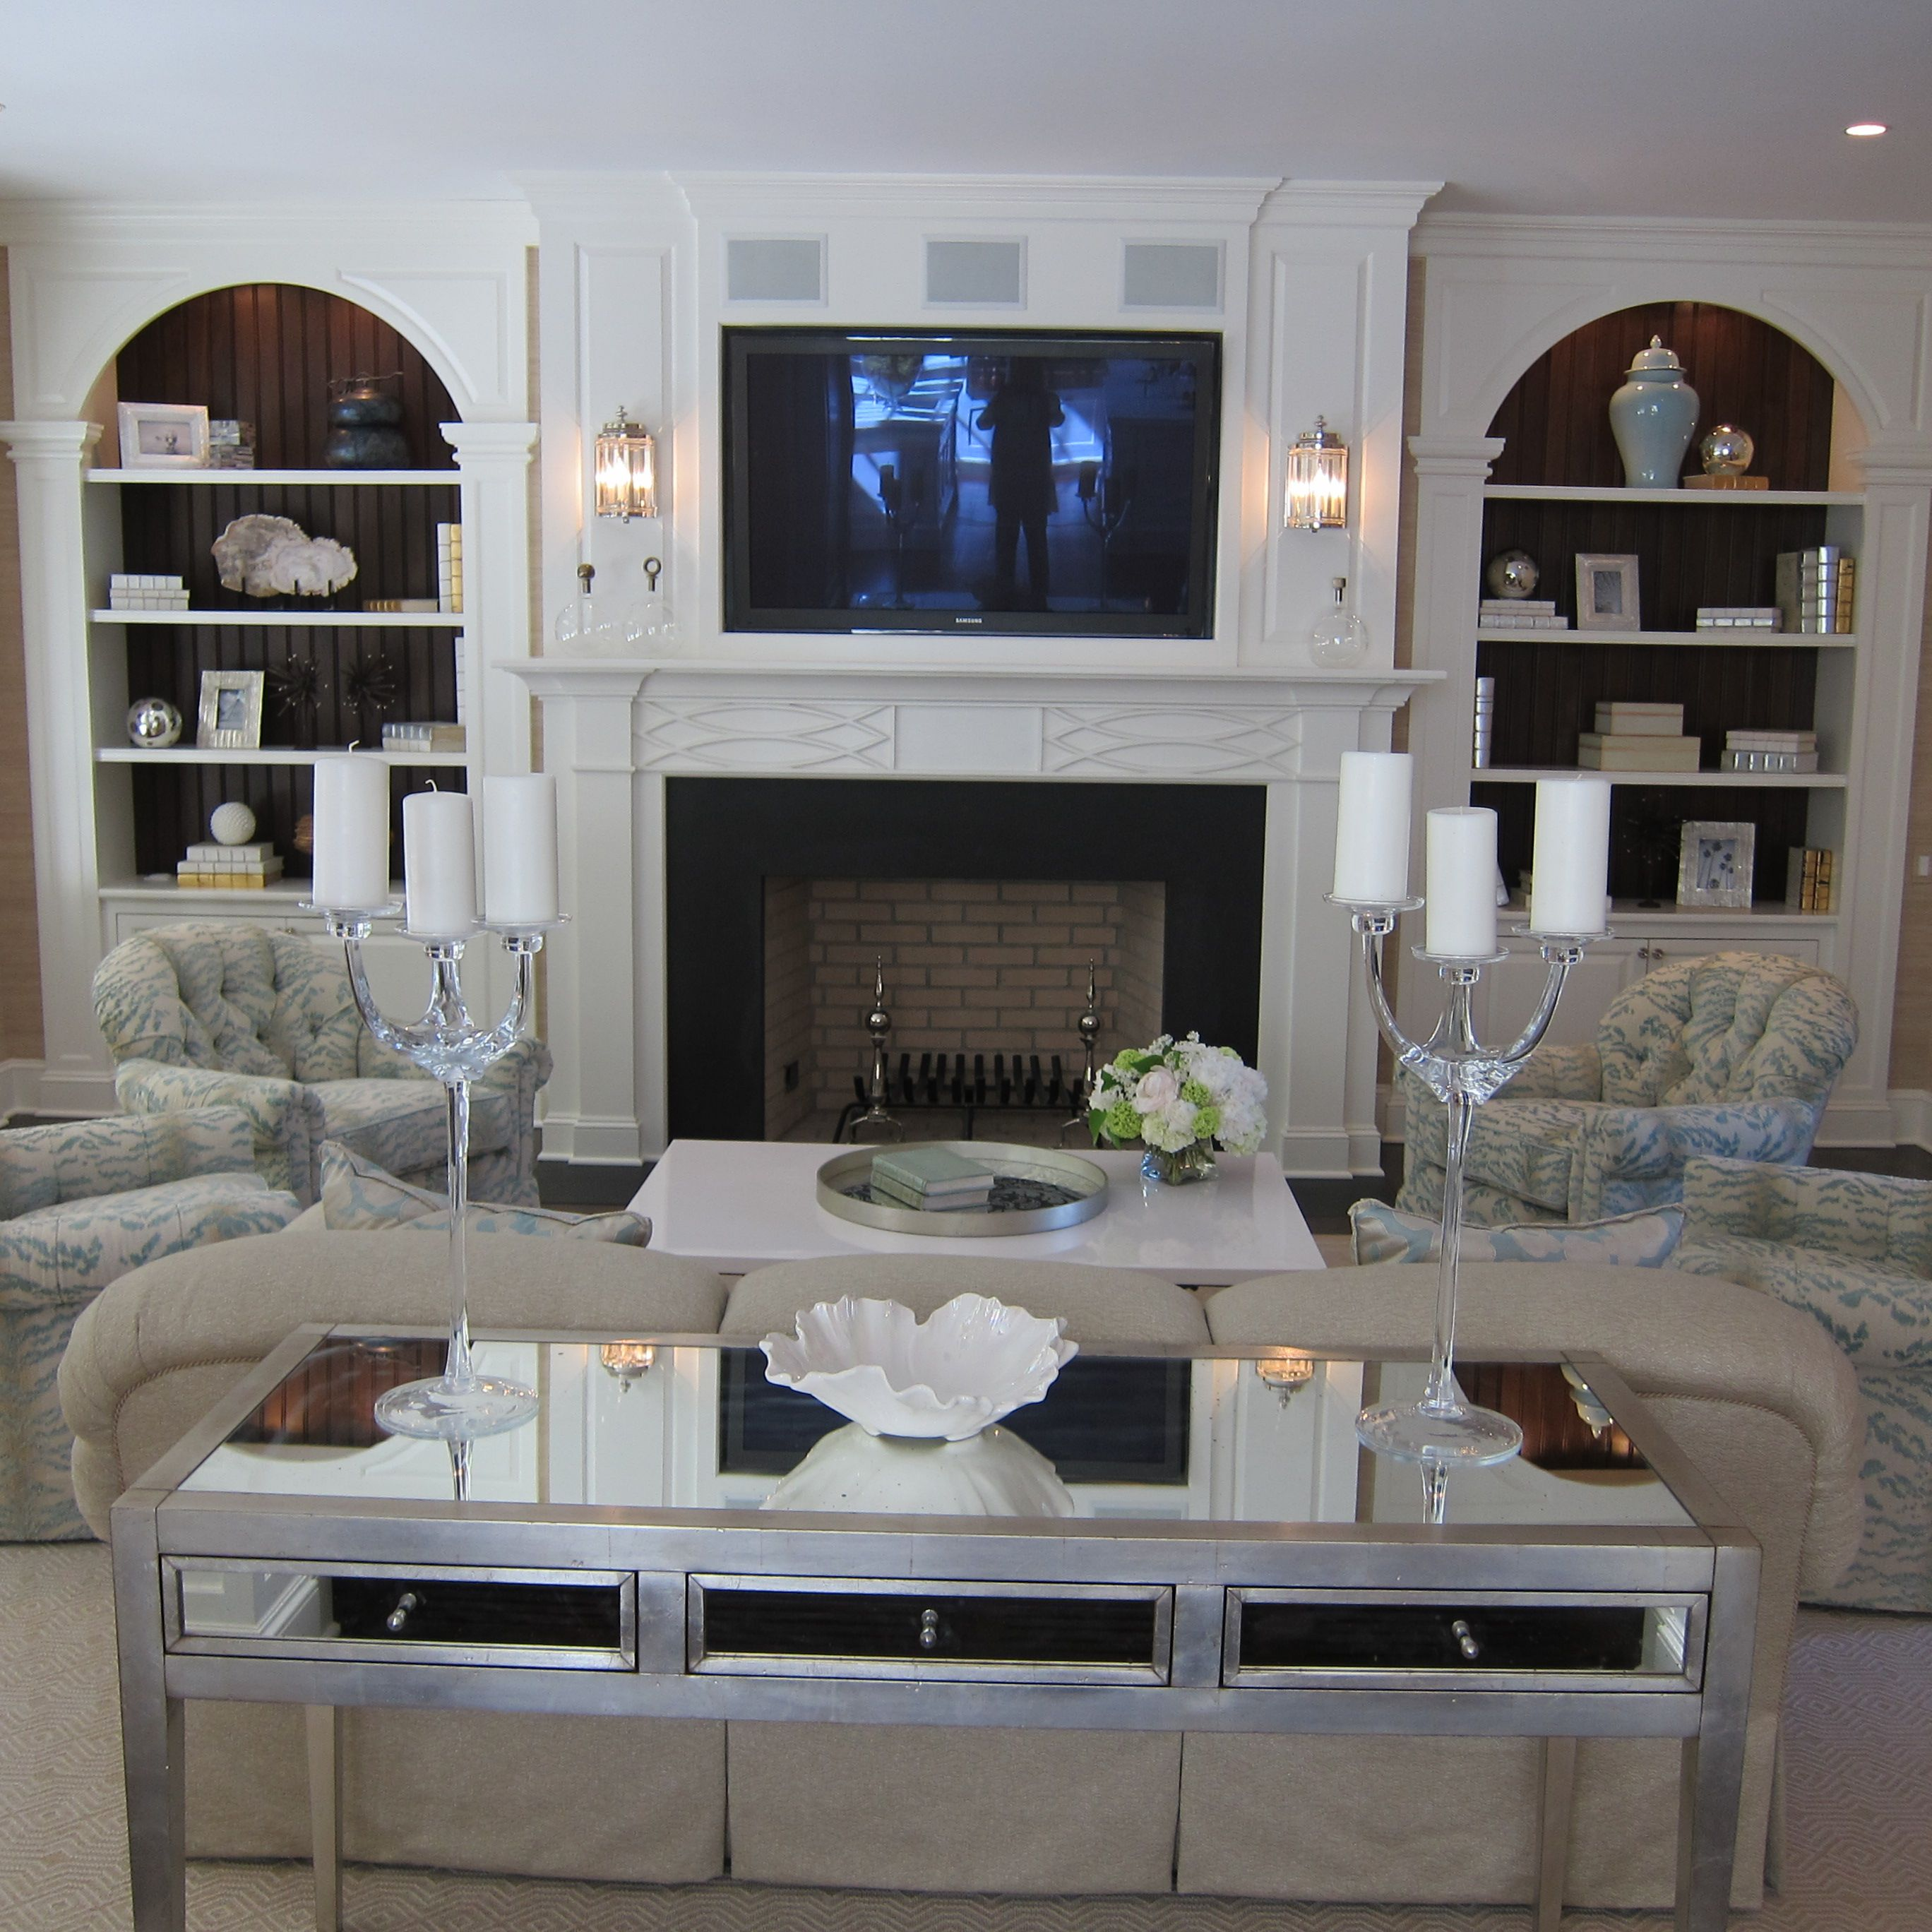 transitional westchester design county llc interior renovation and family fairfield ridgefield in designers home traditional ct modern rachel room belden